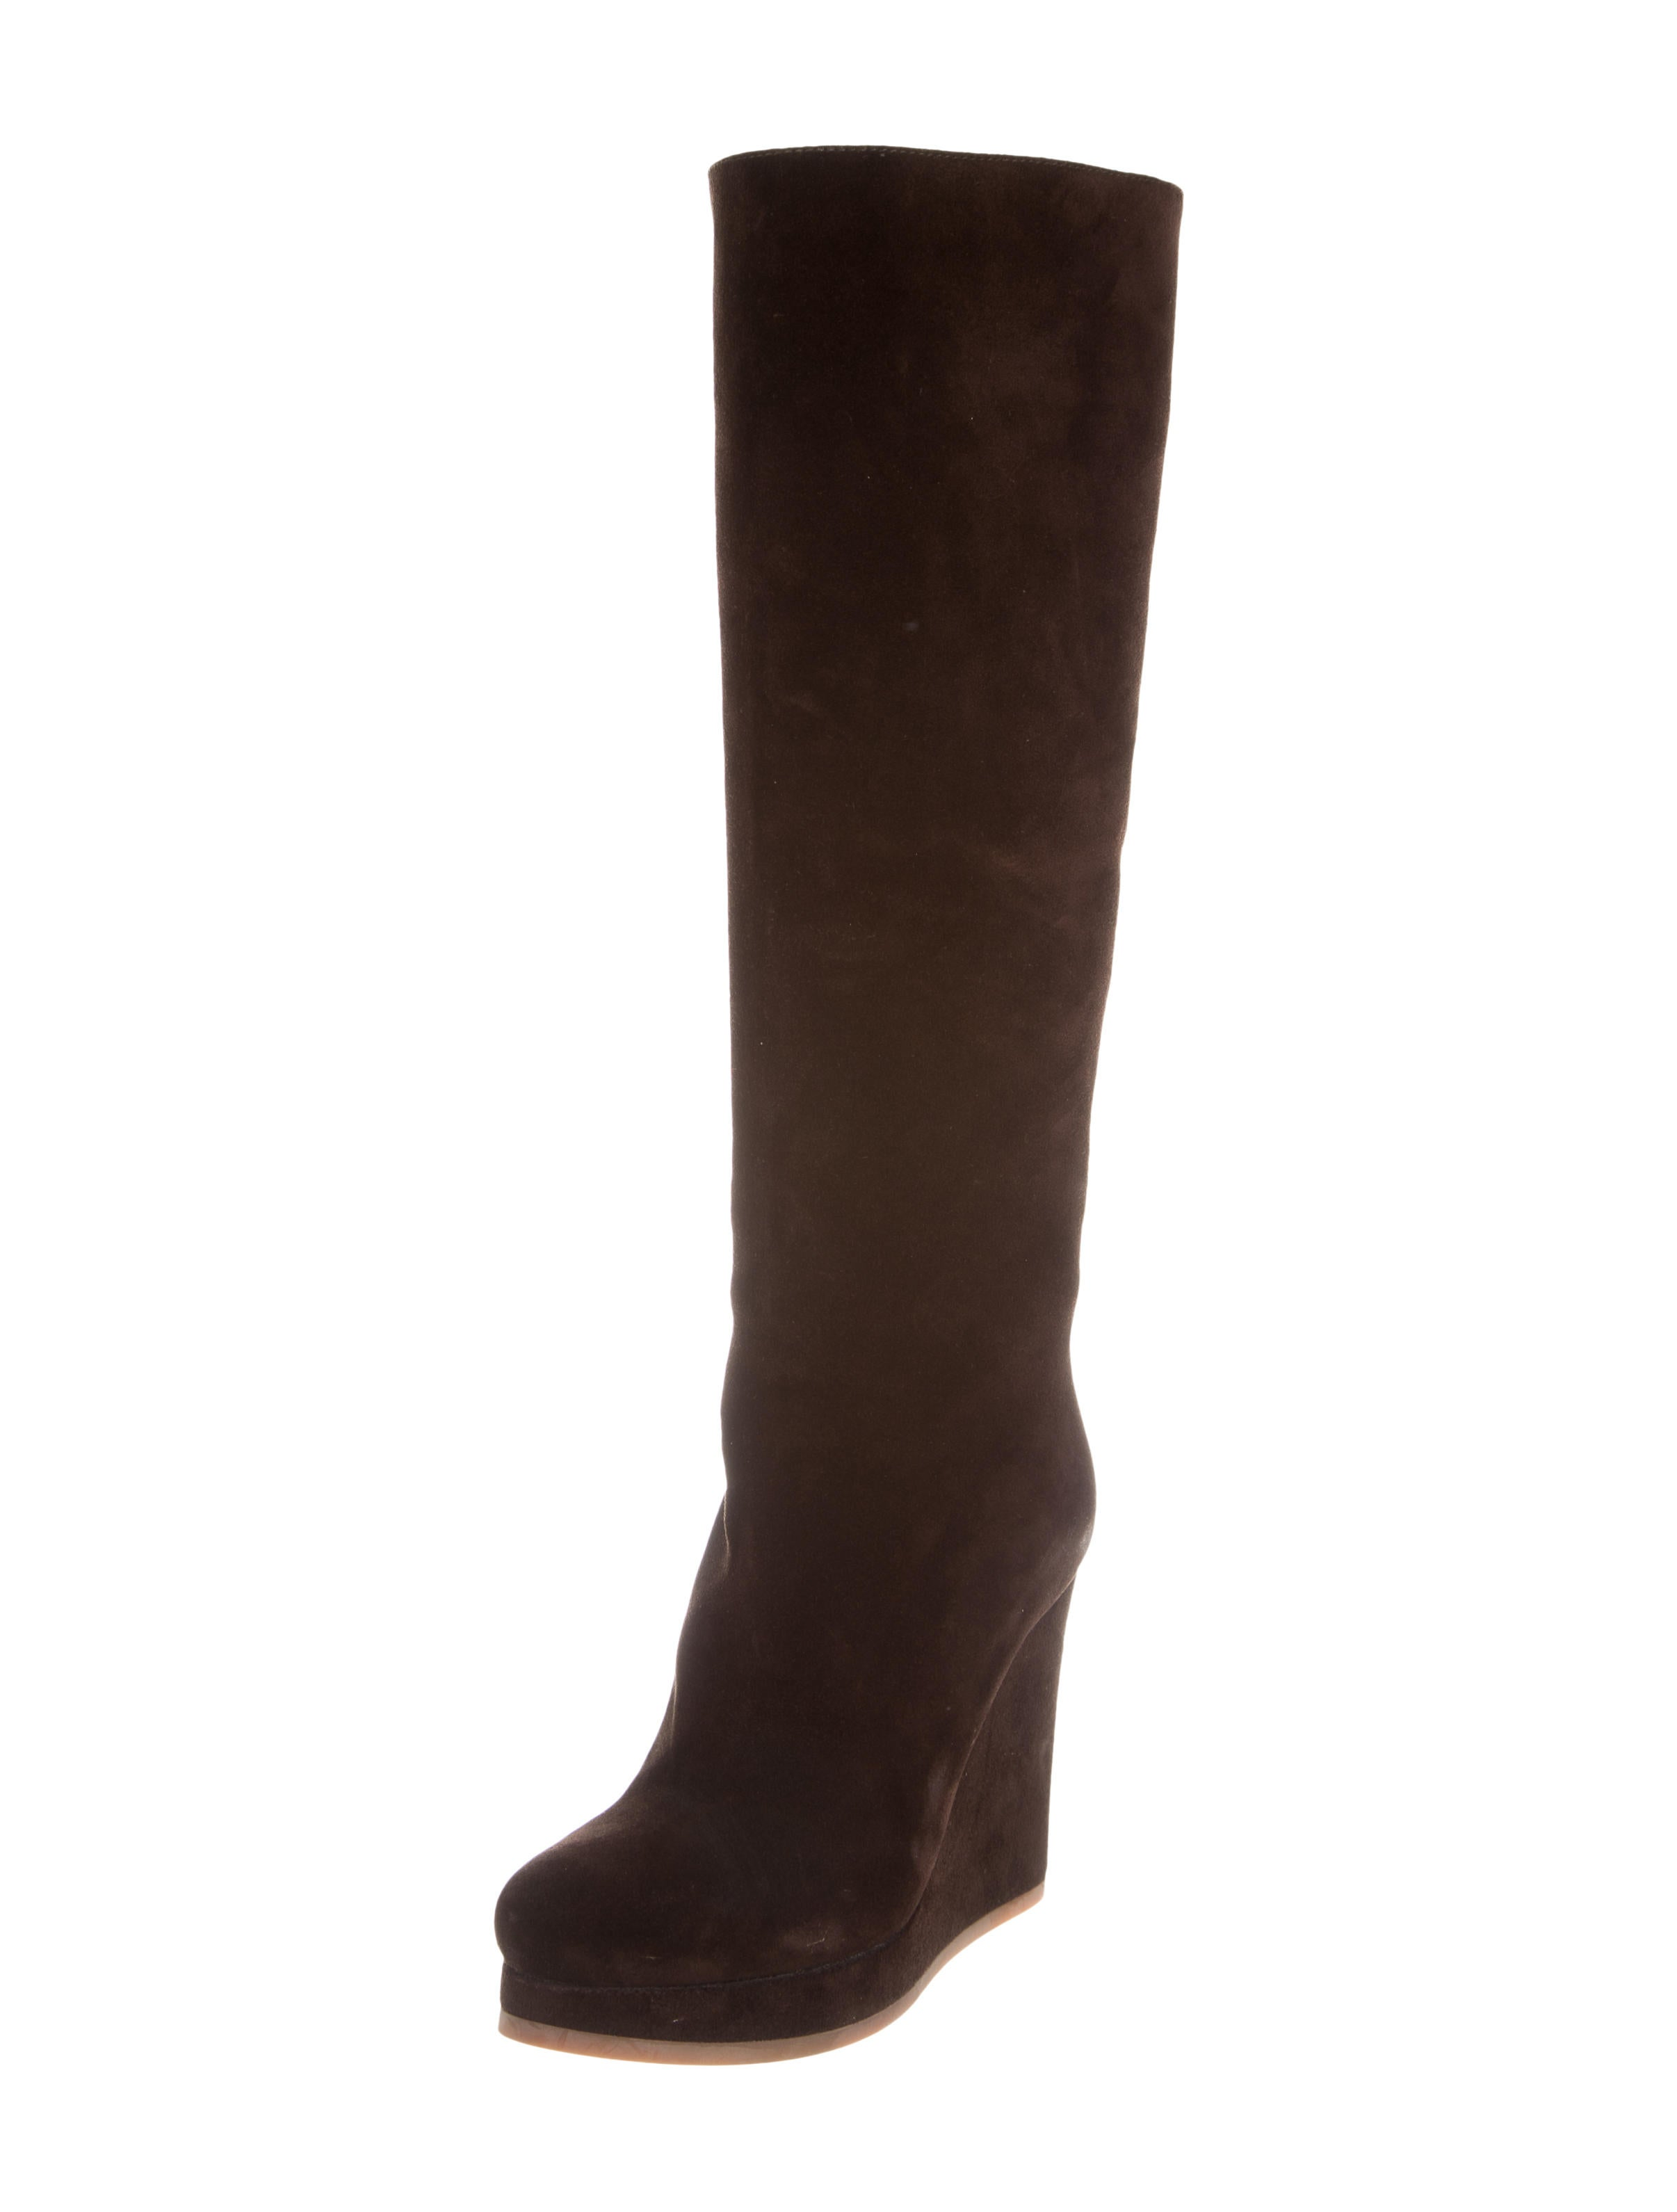 jil sander wedge knee high boots shoes jil35619 the